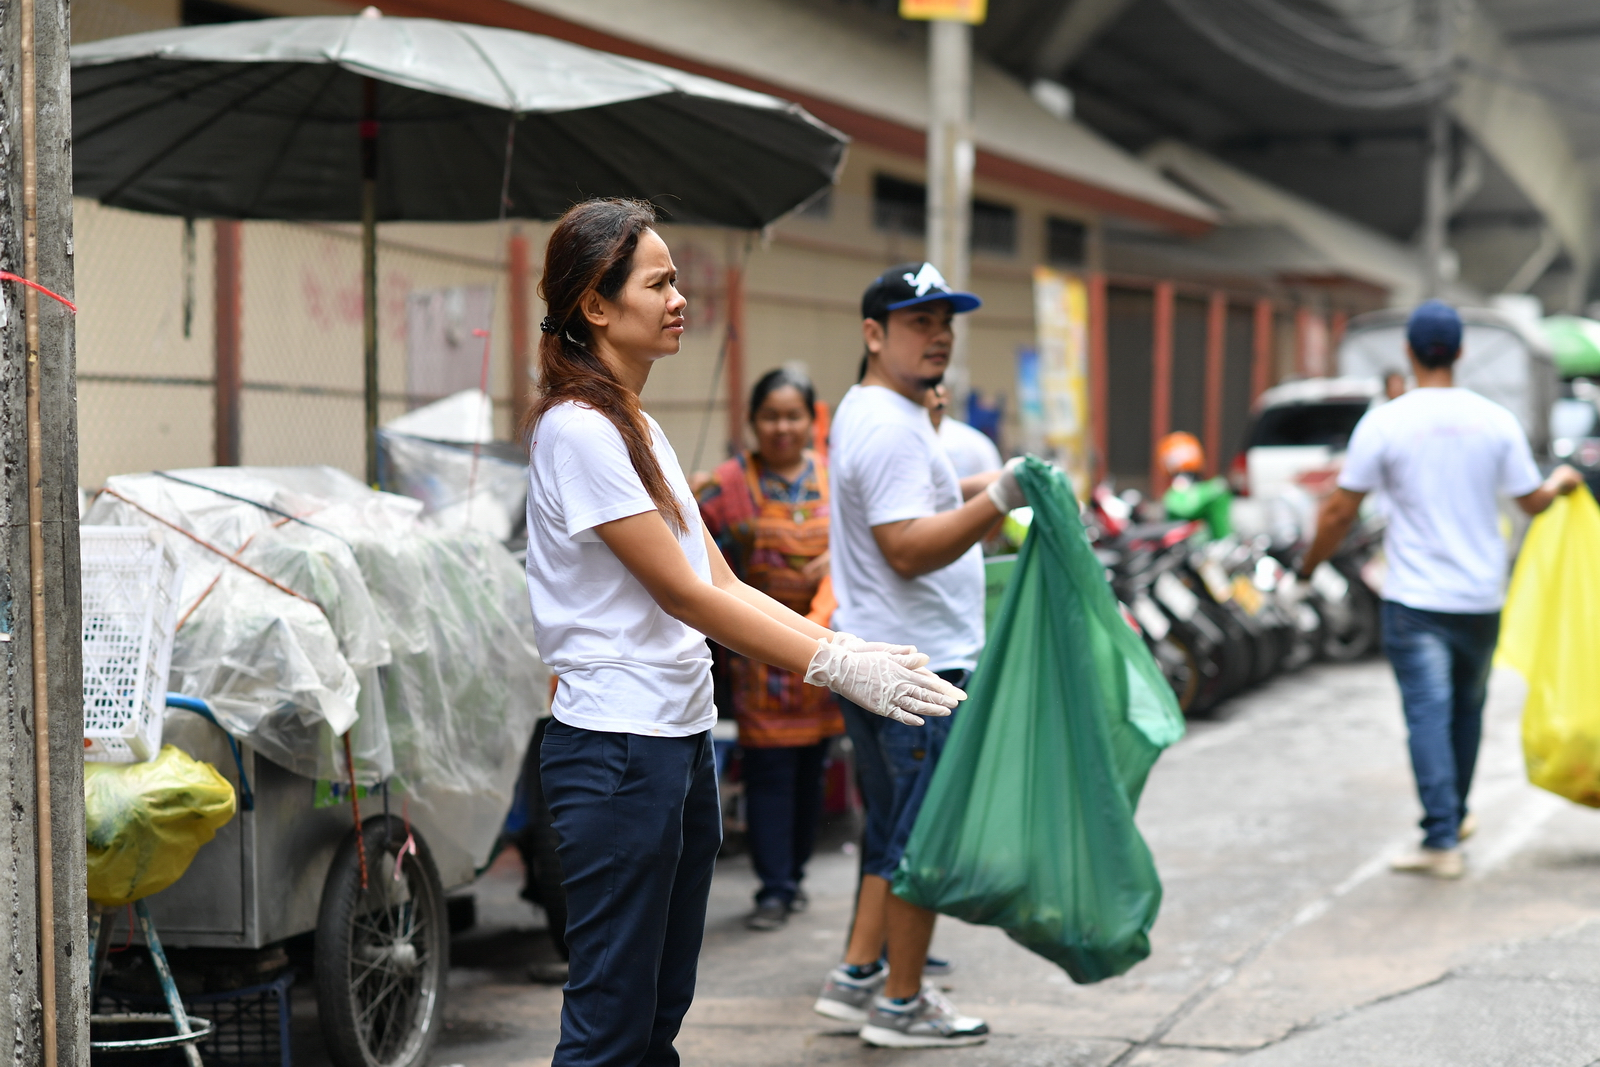 PTendercool-Event-Clean Up The World-190921-096